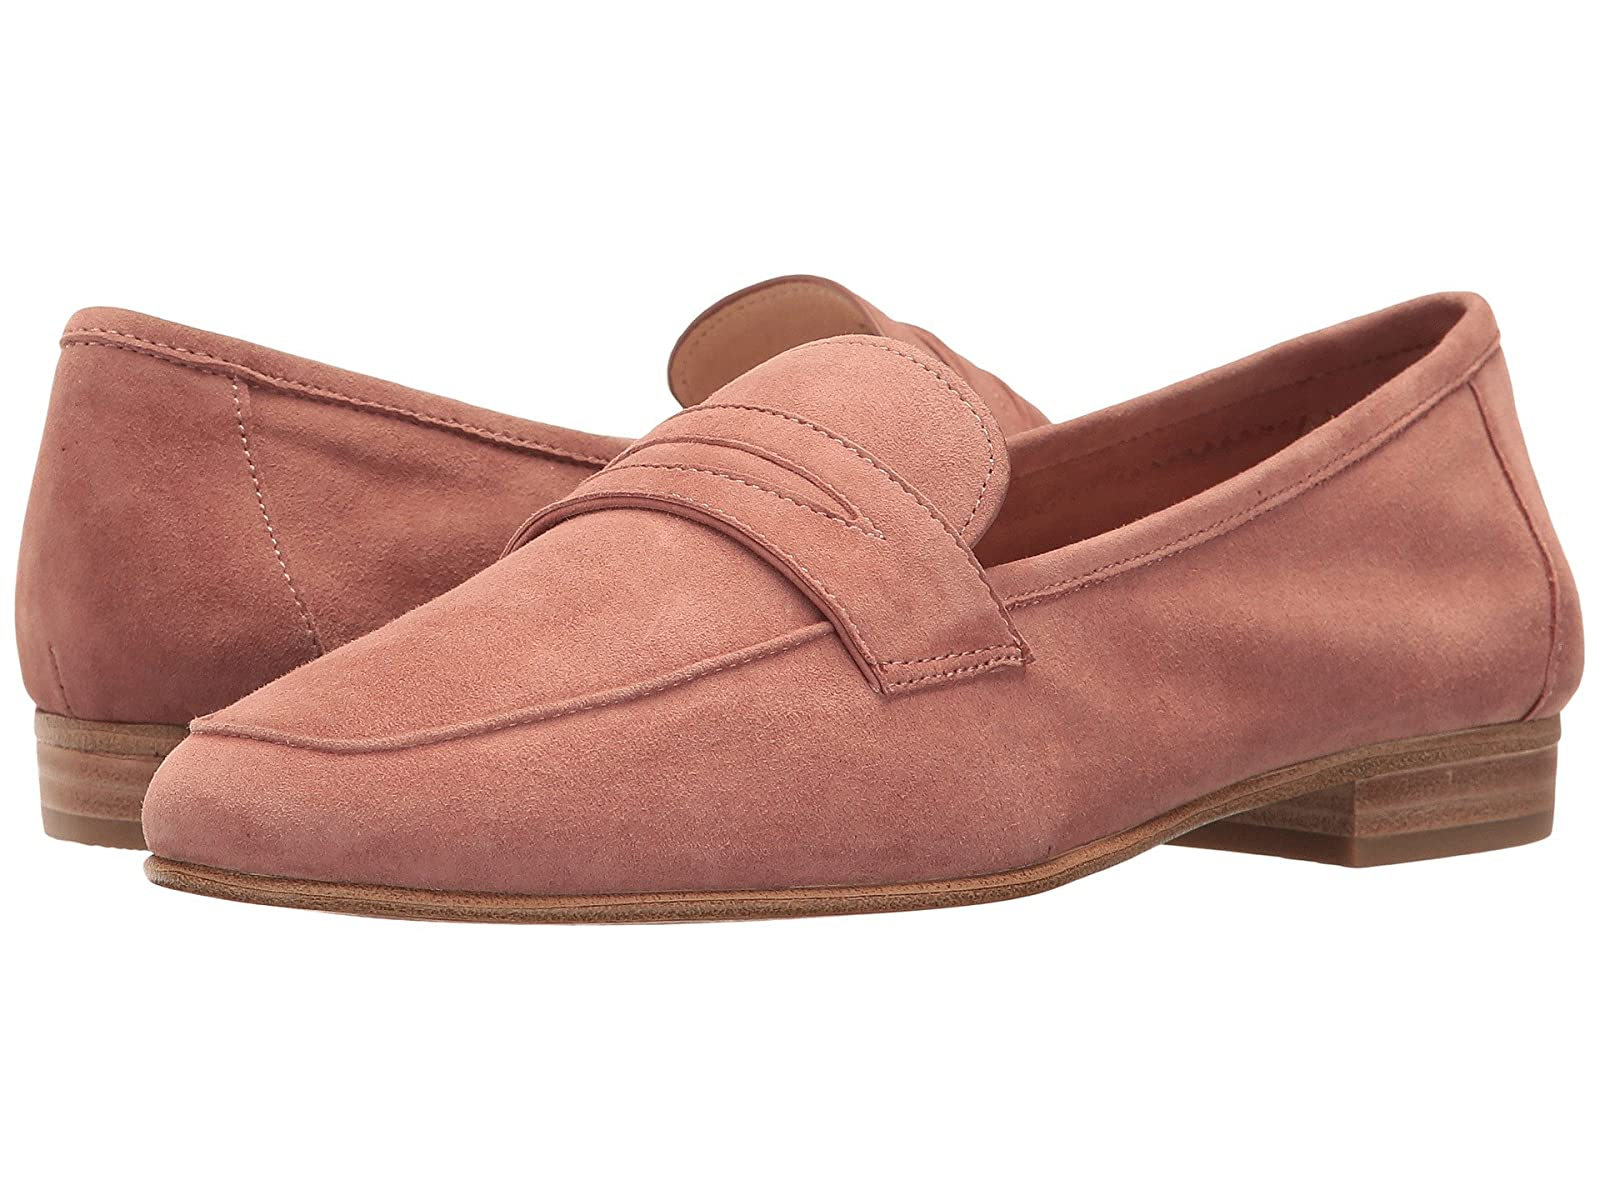 Vince Camuto ElroyCheap and distinctive eye-catching shoes